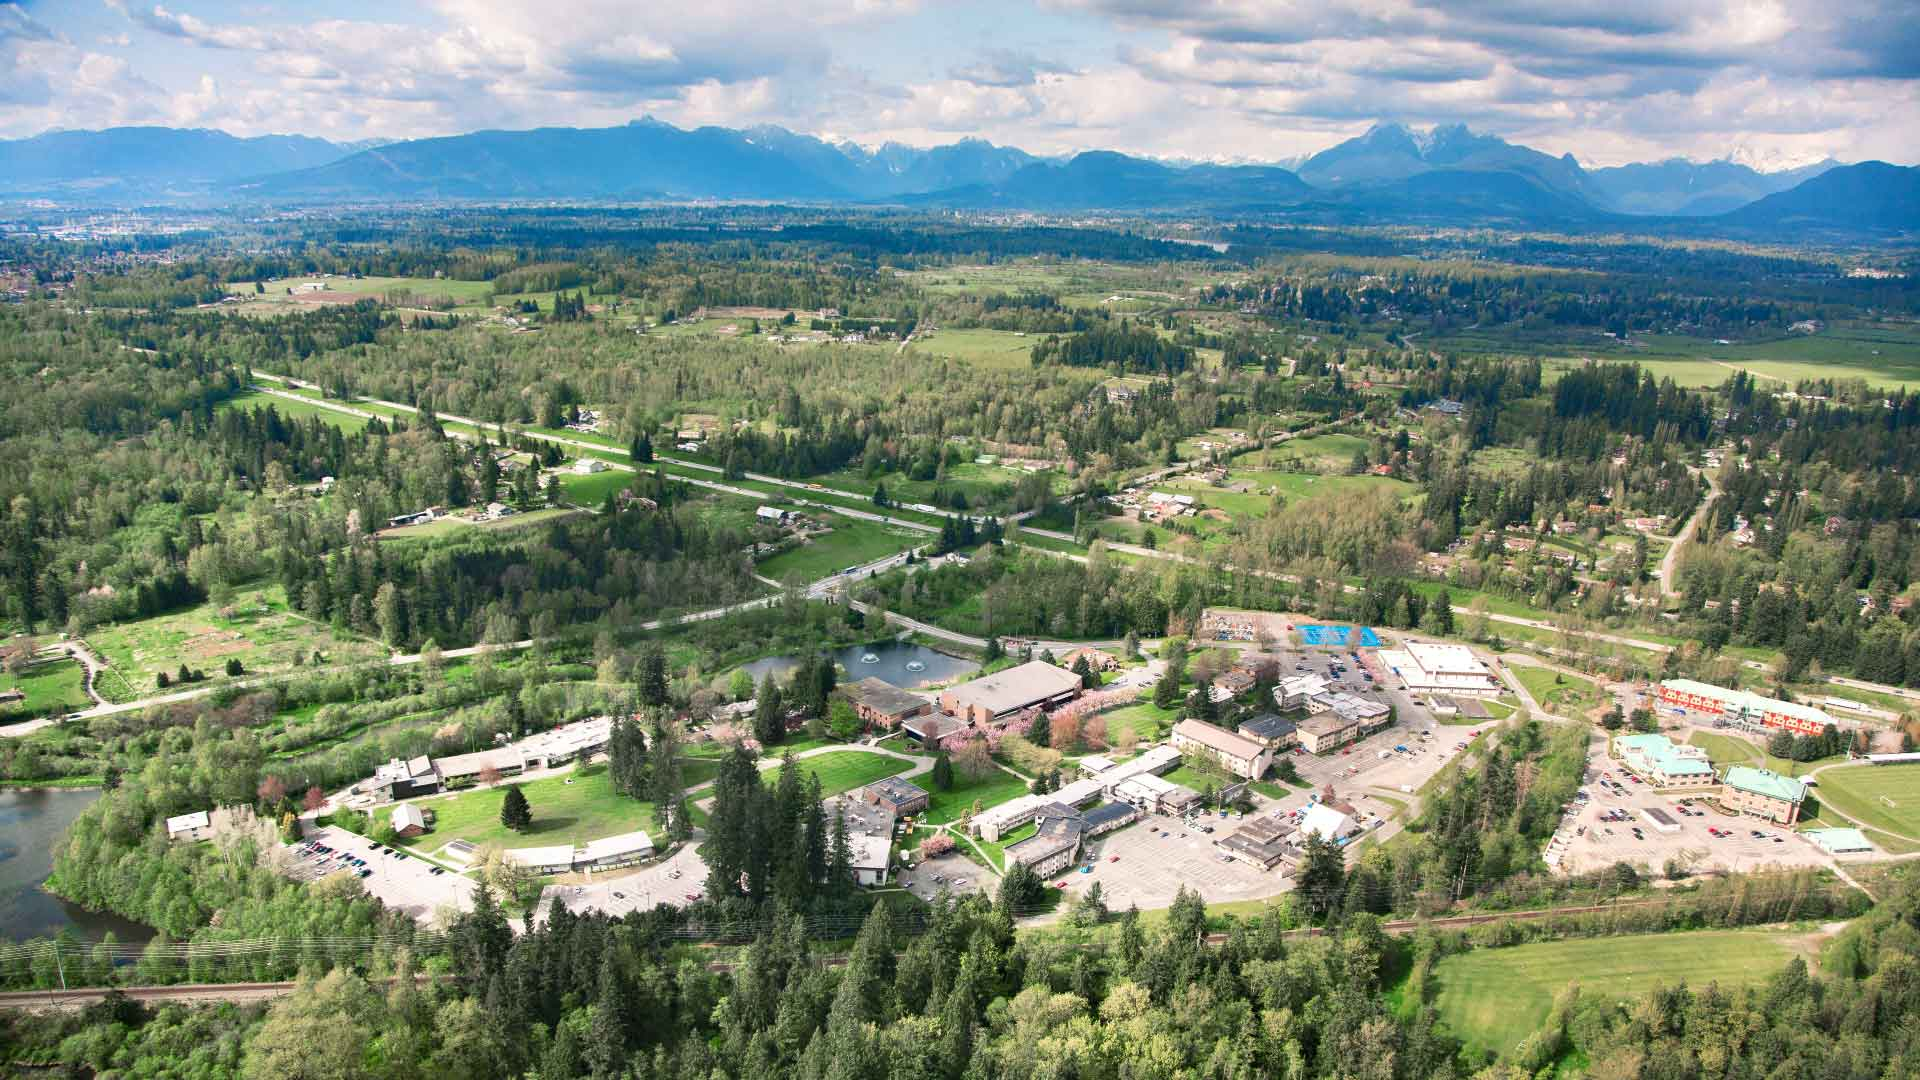 Aerial view of Trinity Western University campus in Langley BC